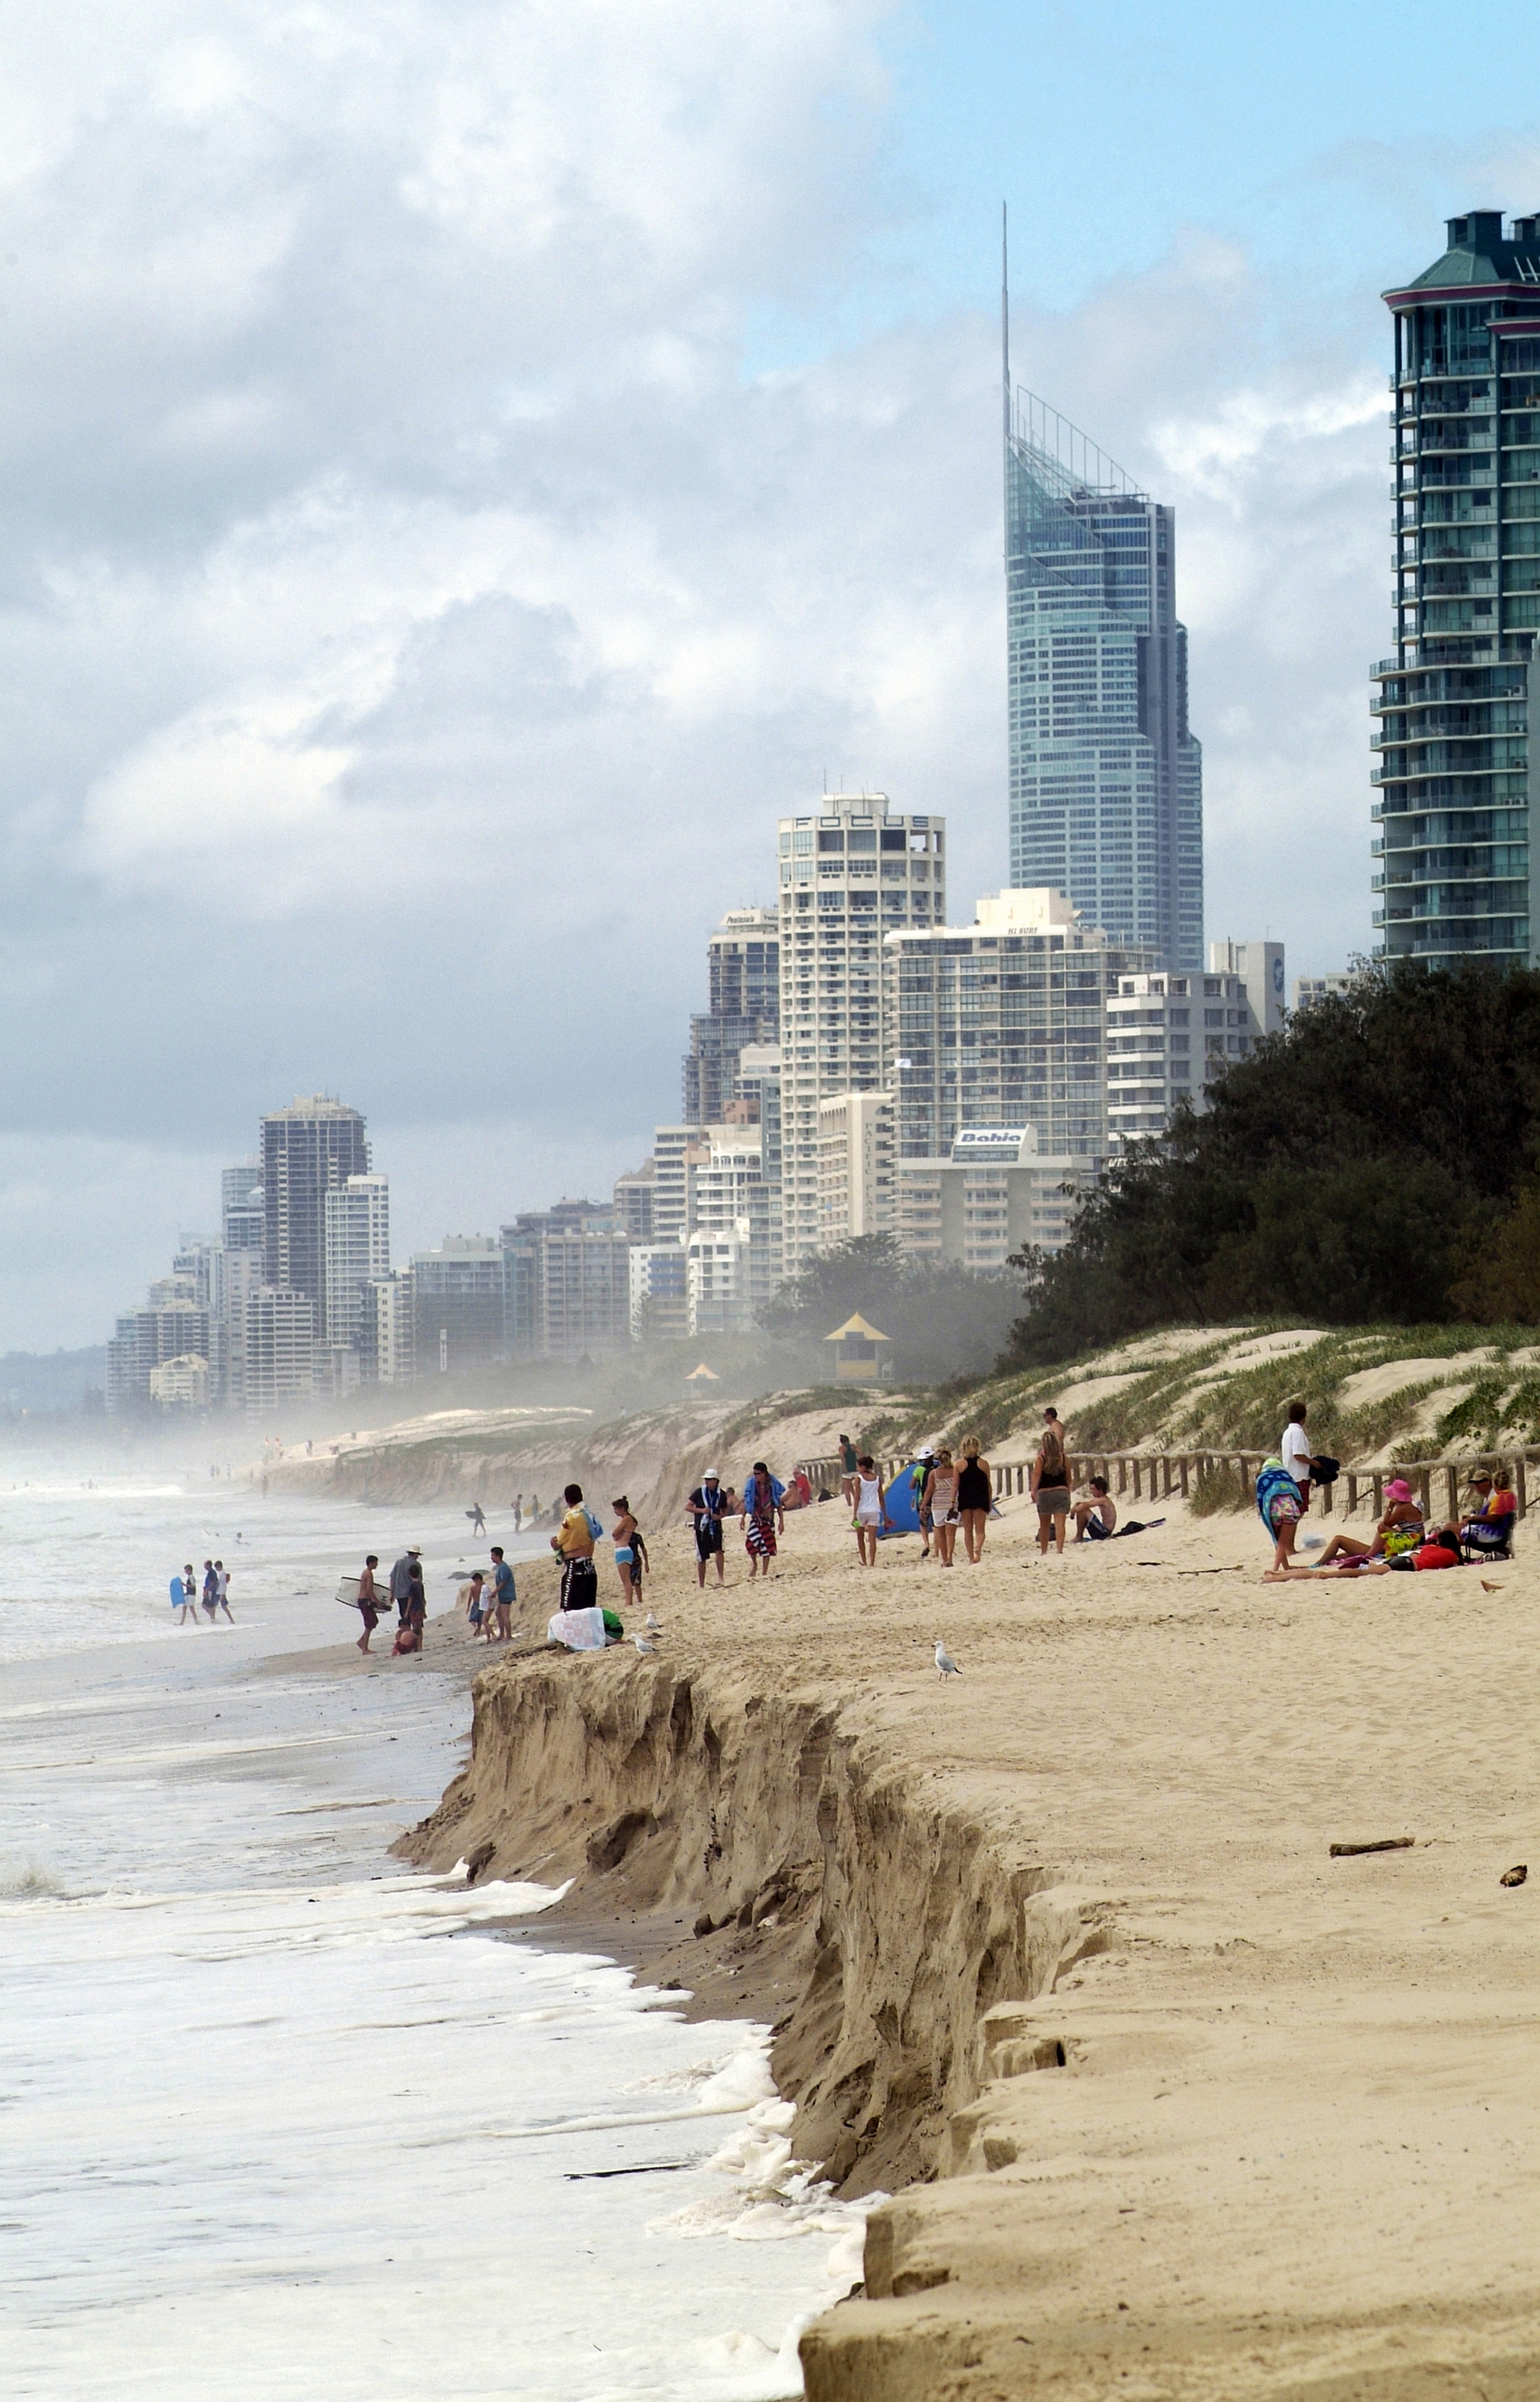 Gold Coast beach after a king tide, with major sand erosion in the foreground and high-rise properties in the background